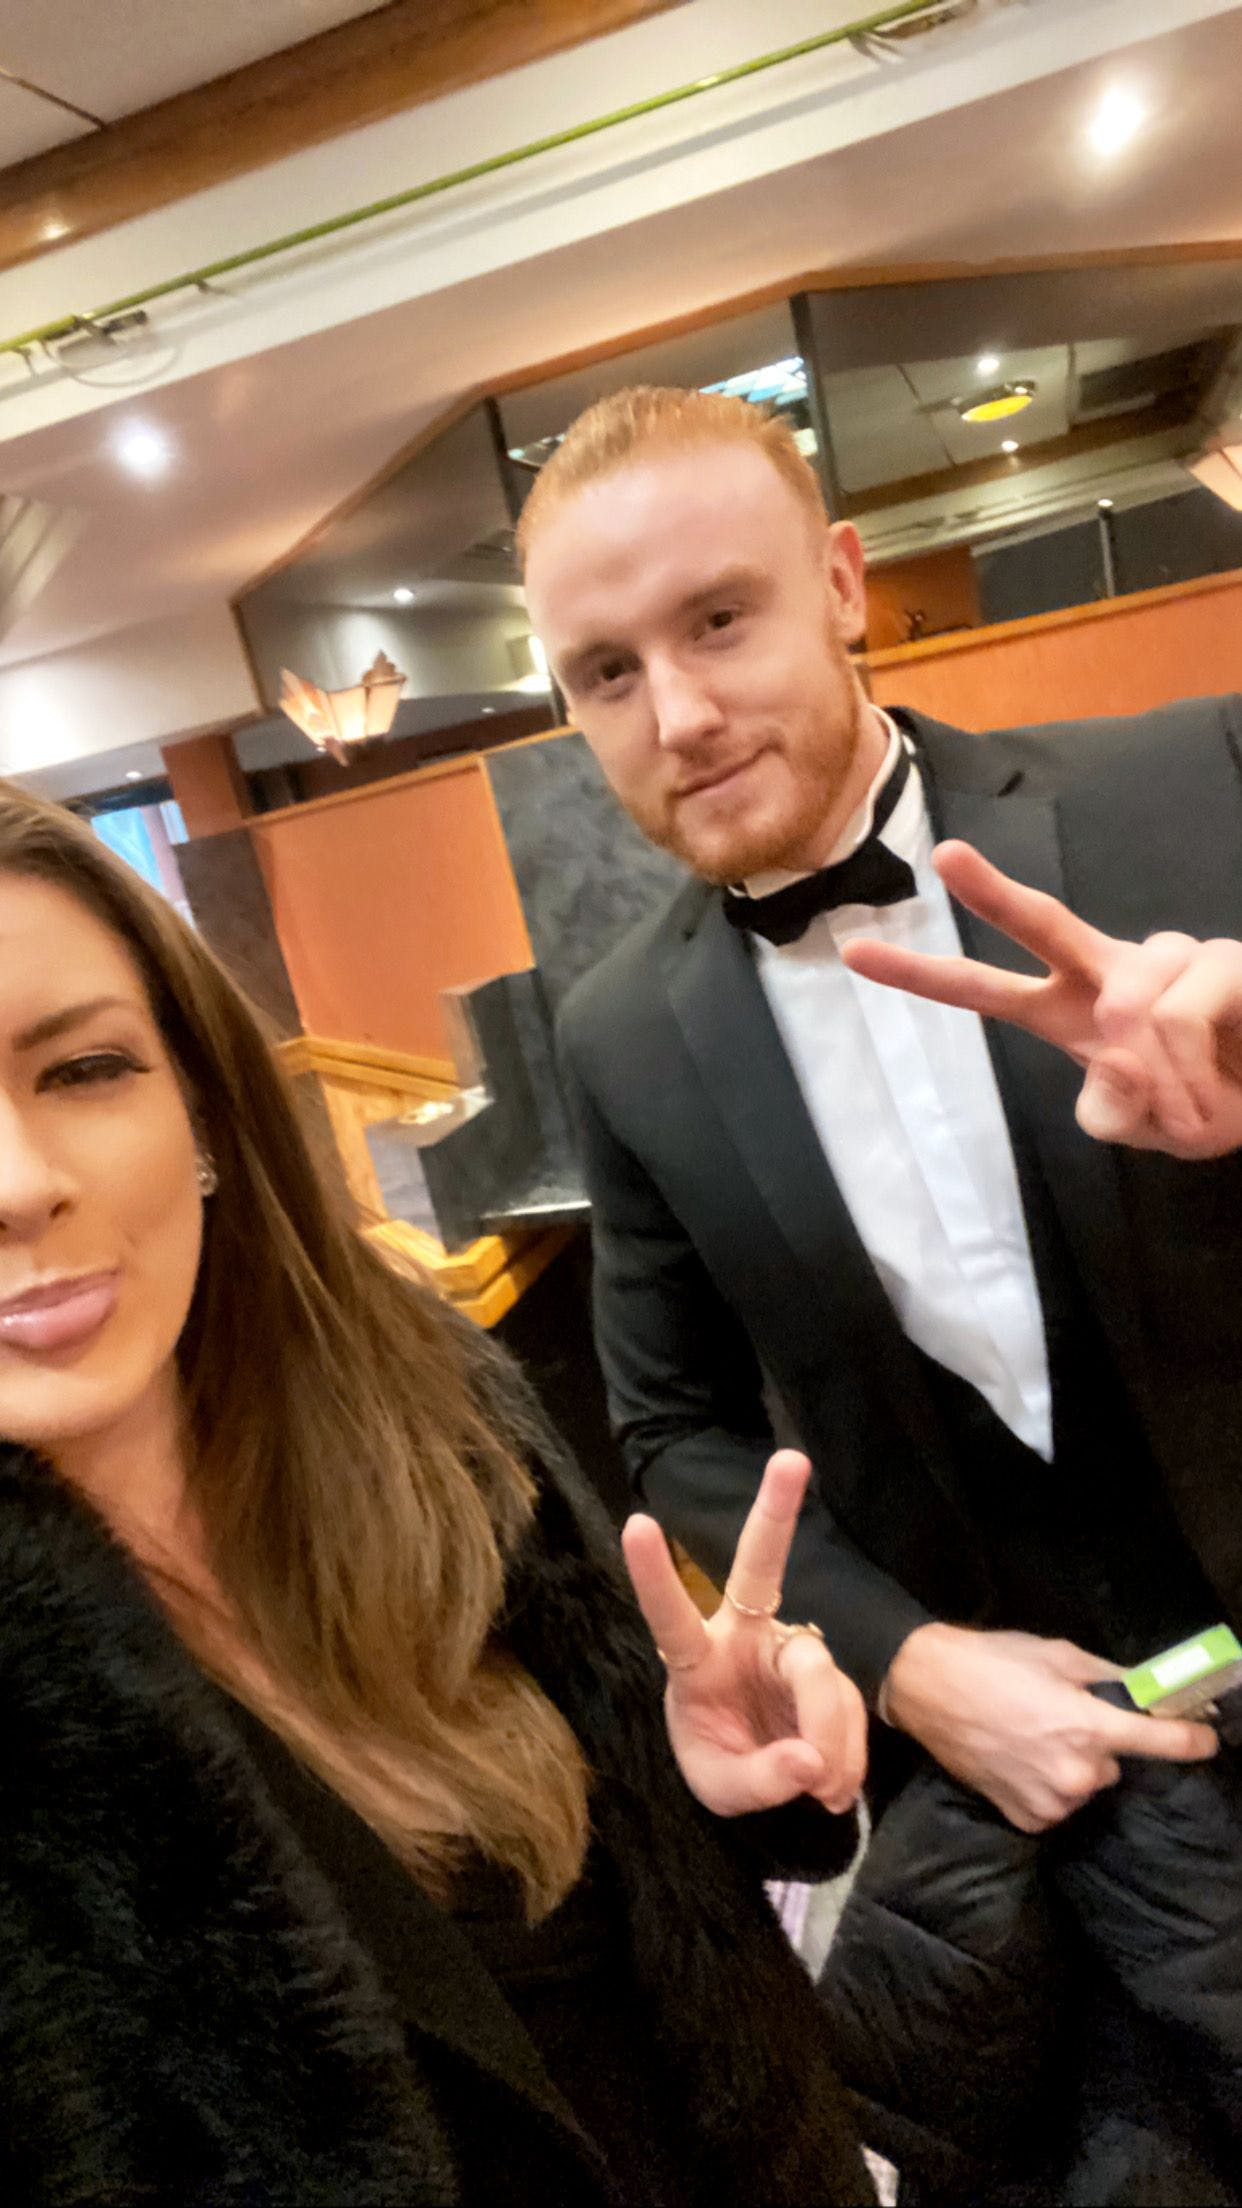 SCR Tracker Co Founder Luke O'Dwyer and Head of Business Development Julia Nielsen black tie event Troxy London bett show awards 2020 finalists award winning software single central register record vetting checks dbs recruitment HR business manager